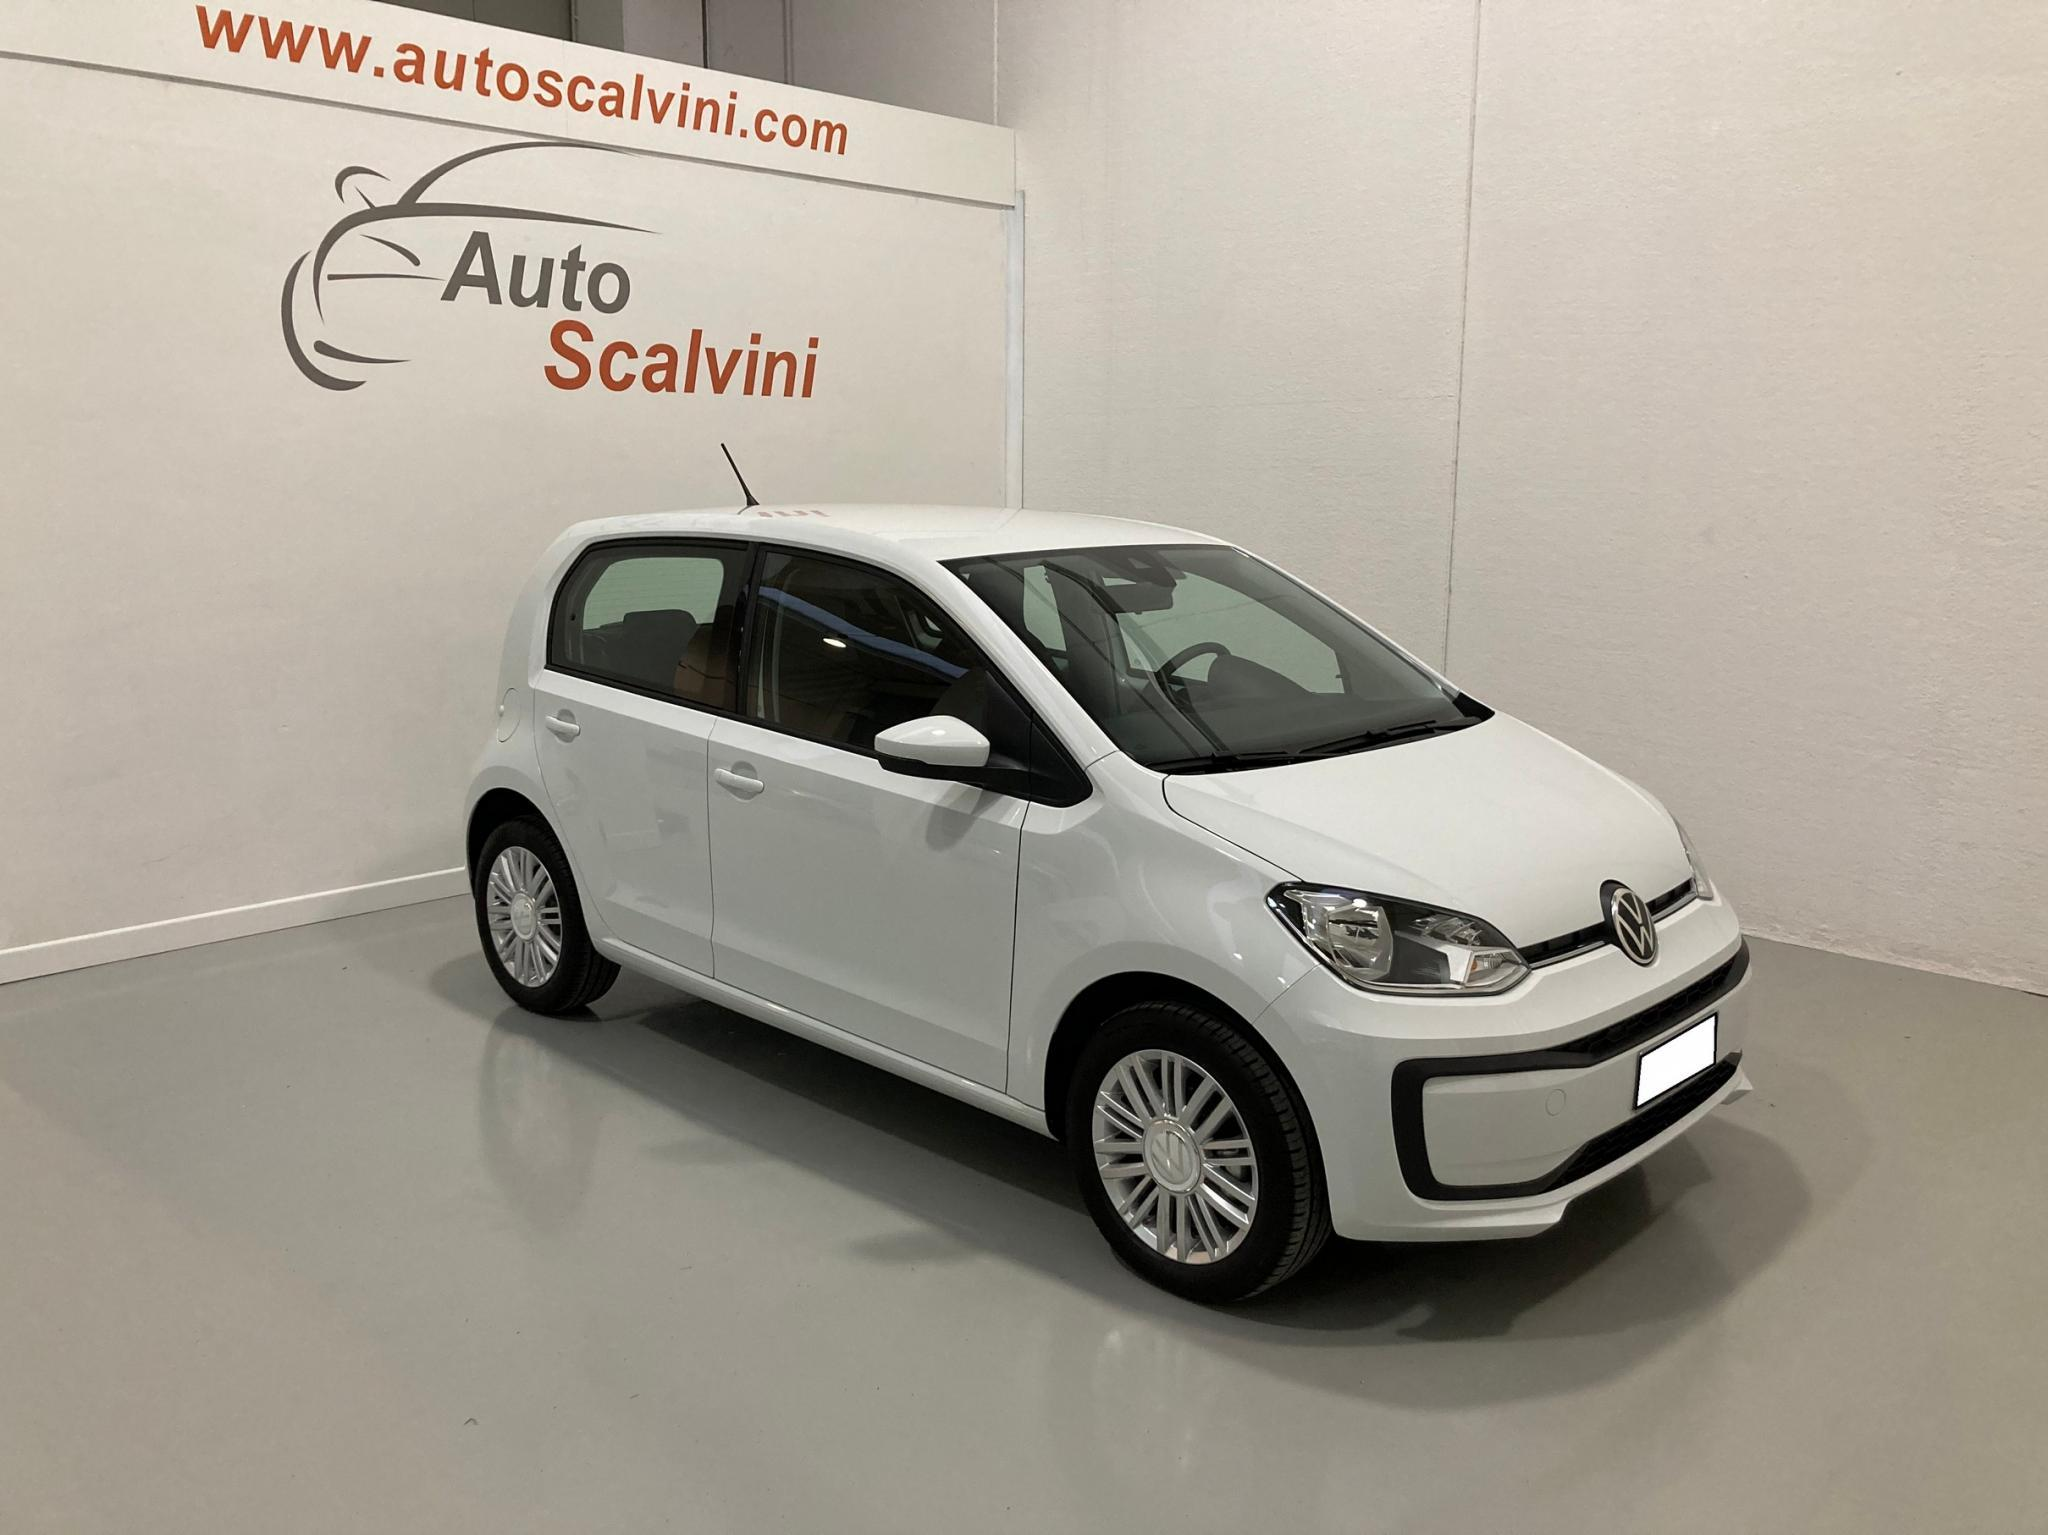 Volkswagen up! 1.0 5p. eco move up! BlueMotion Tech. GT48 #NEOPATENTATI